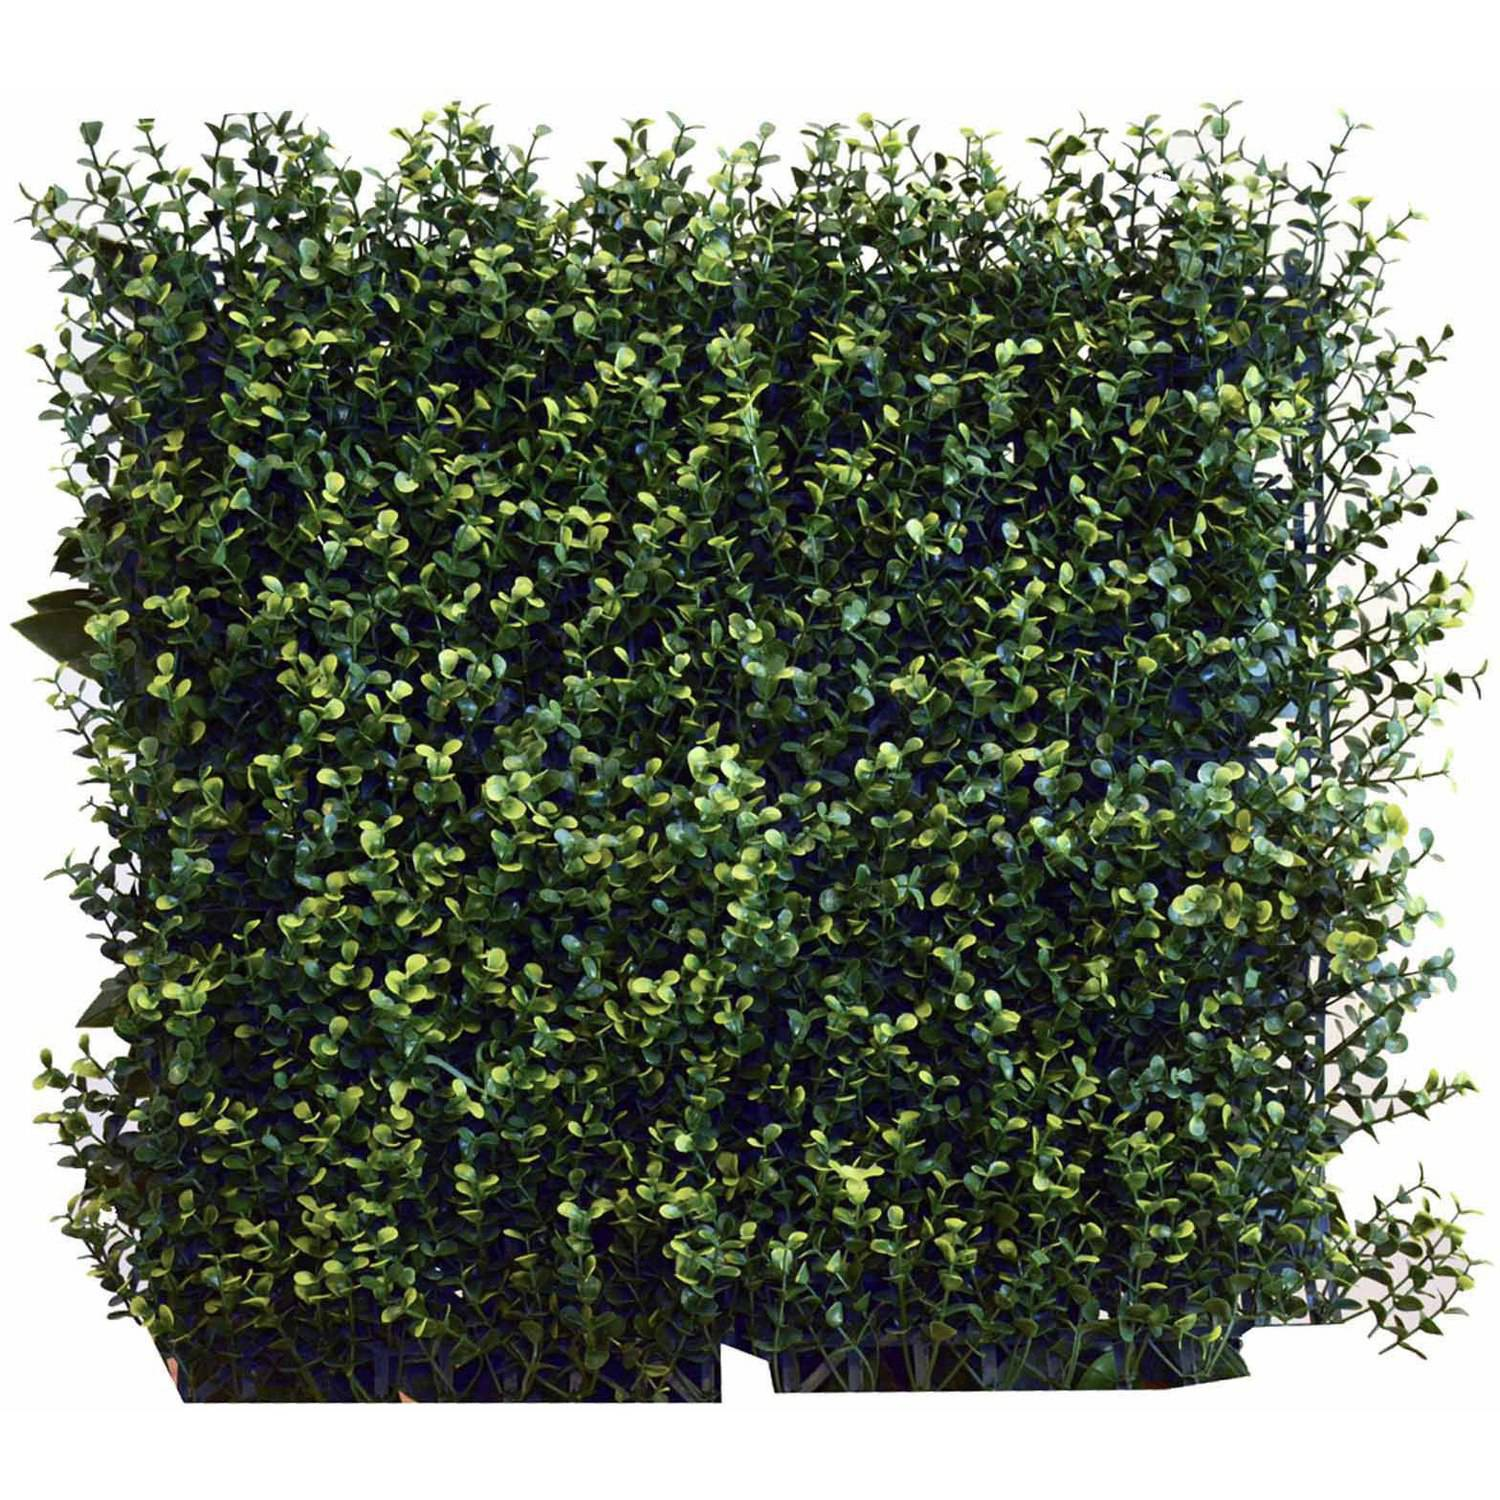 Greensmart Decor Artificial Ficus Spring Wall Panels, Set of 4